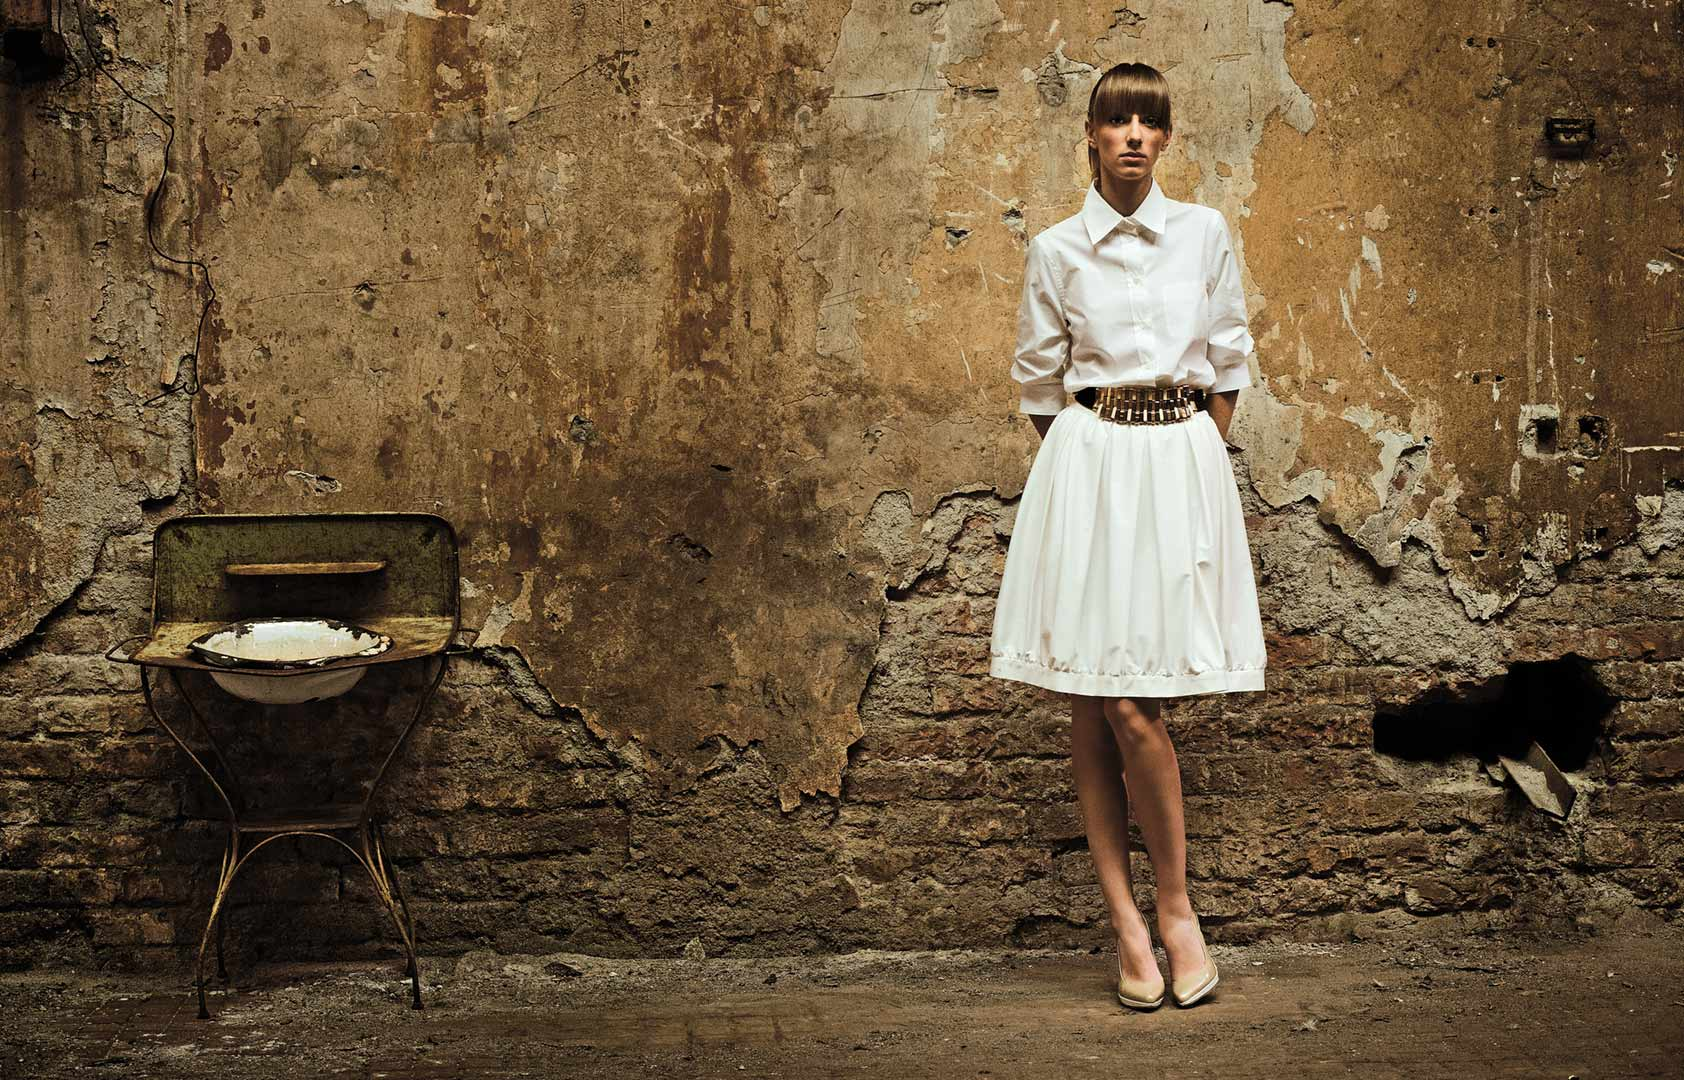 Fashion editorial photography pictures